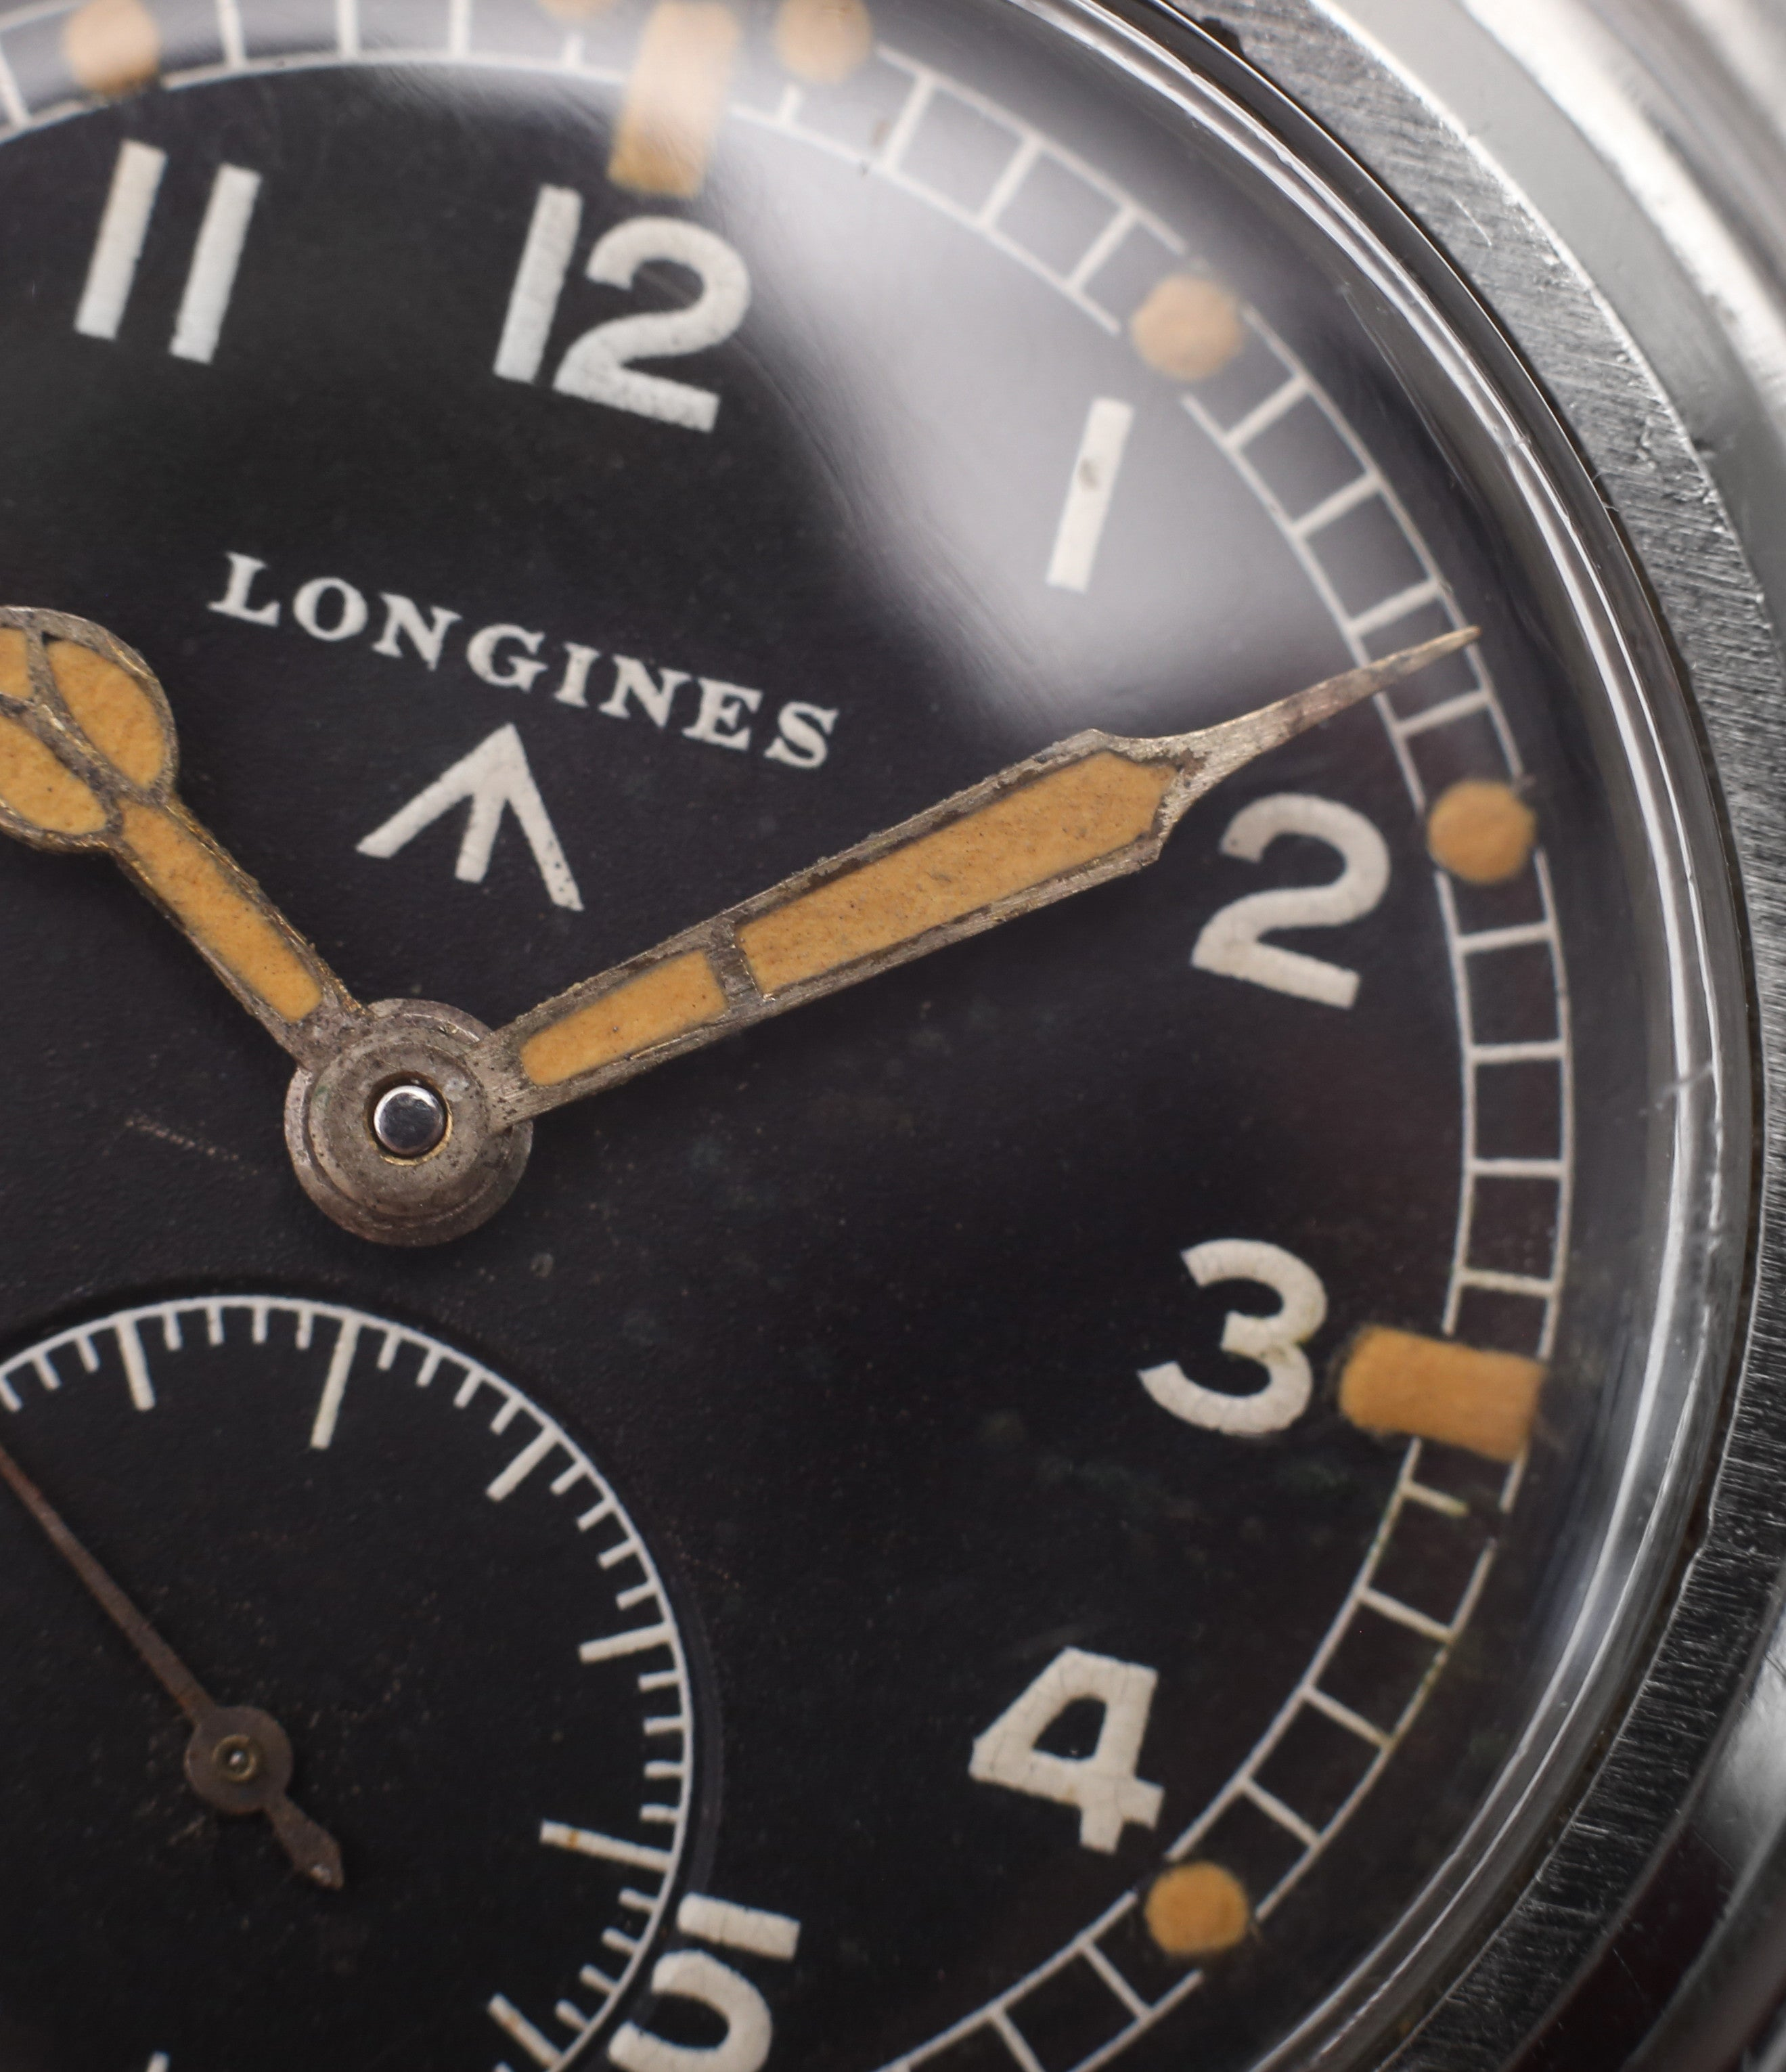 cathedral hands Longines WWW MoD British military vintage watch F6870 for sale online at A Collected Man London vintage watches specialist